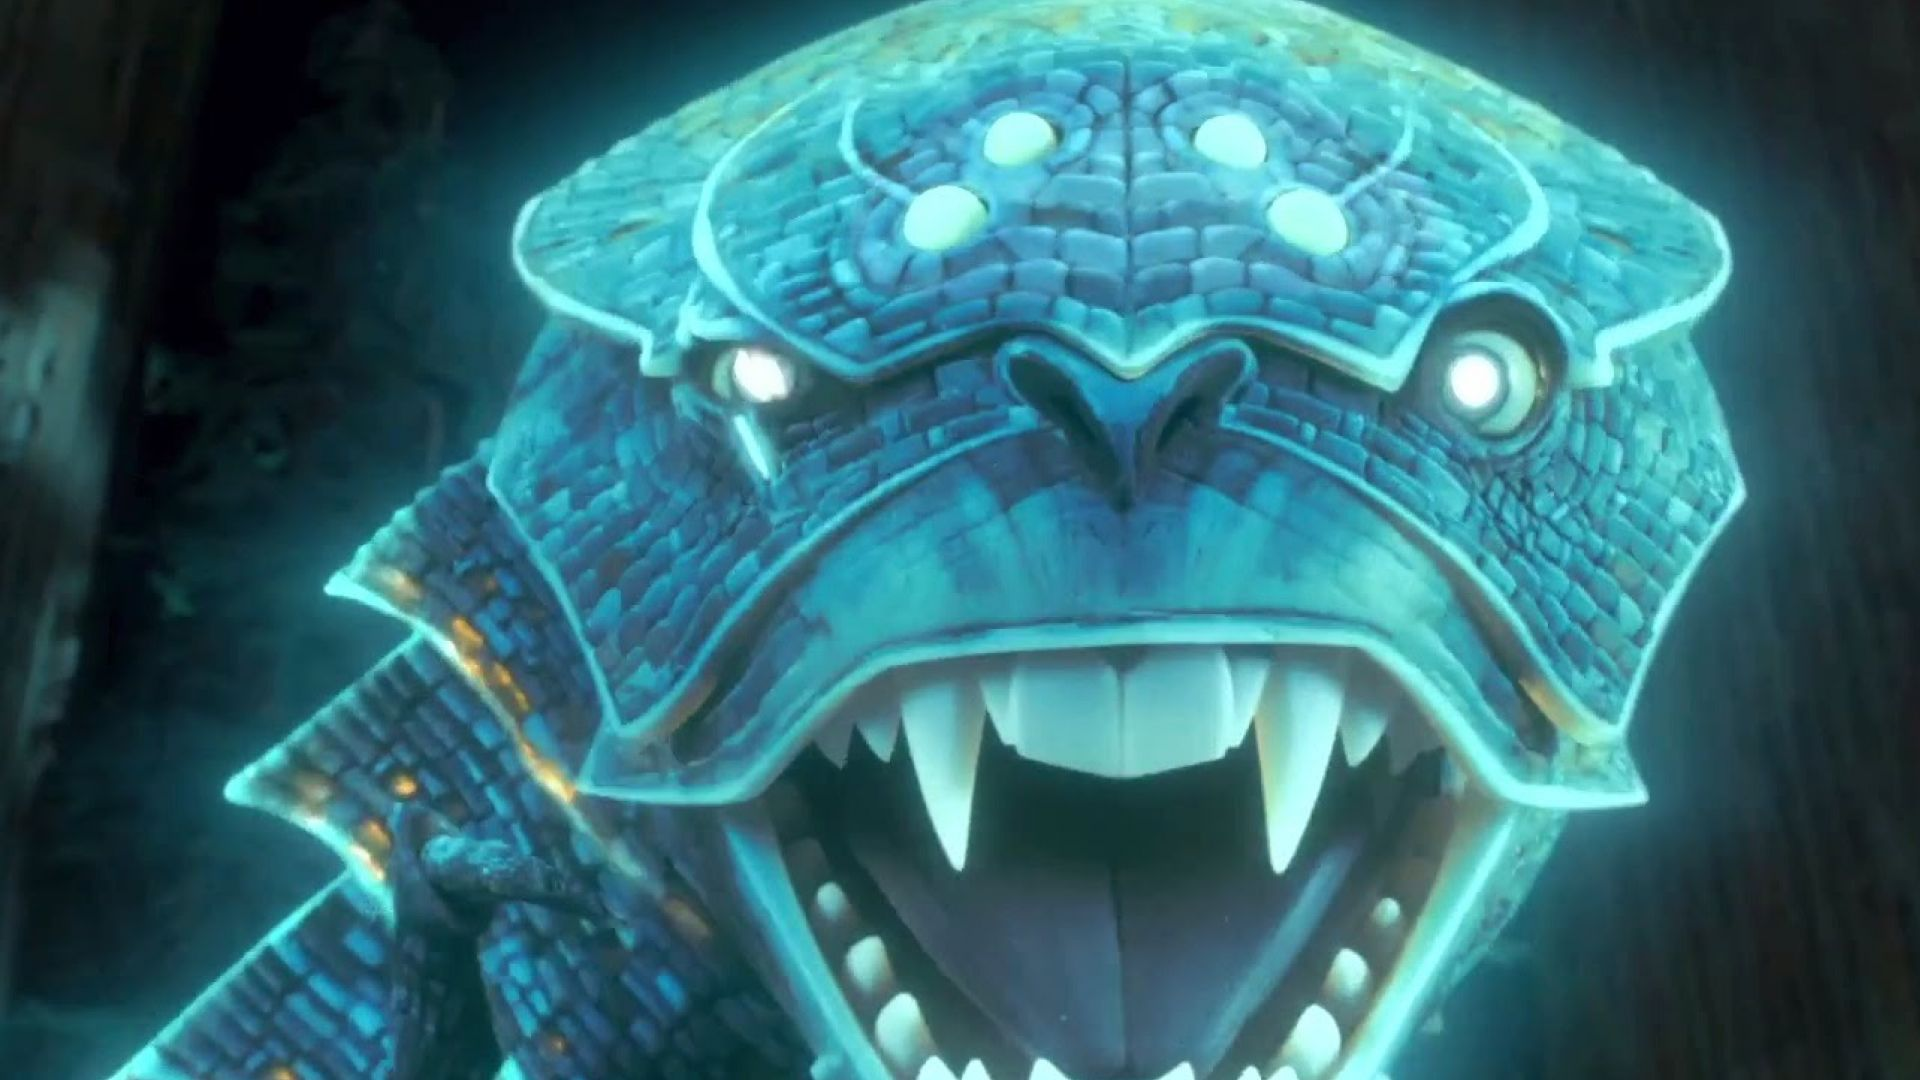 The Third Trailer Released for 'Kubo and the Two Strings'